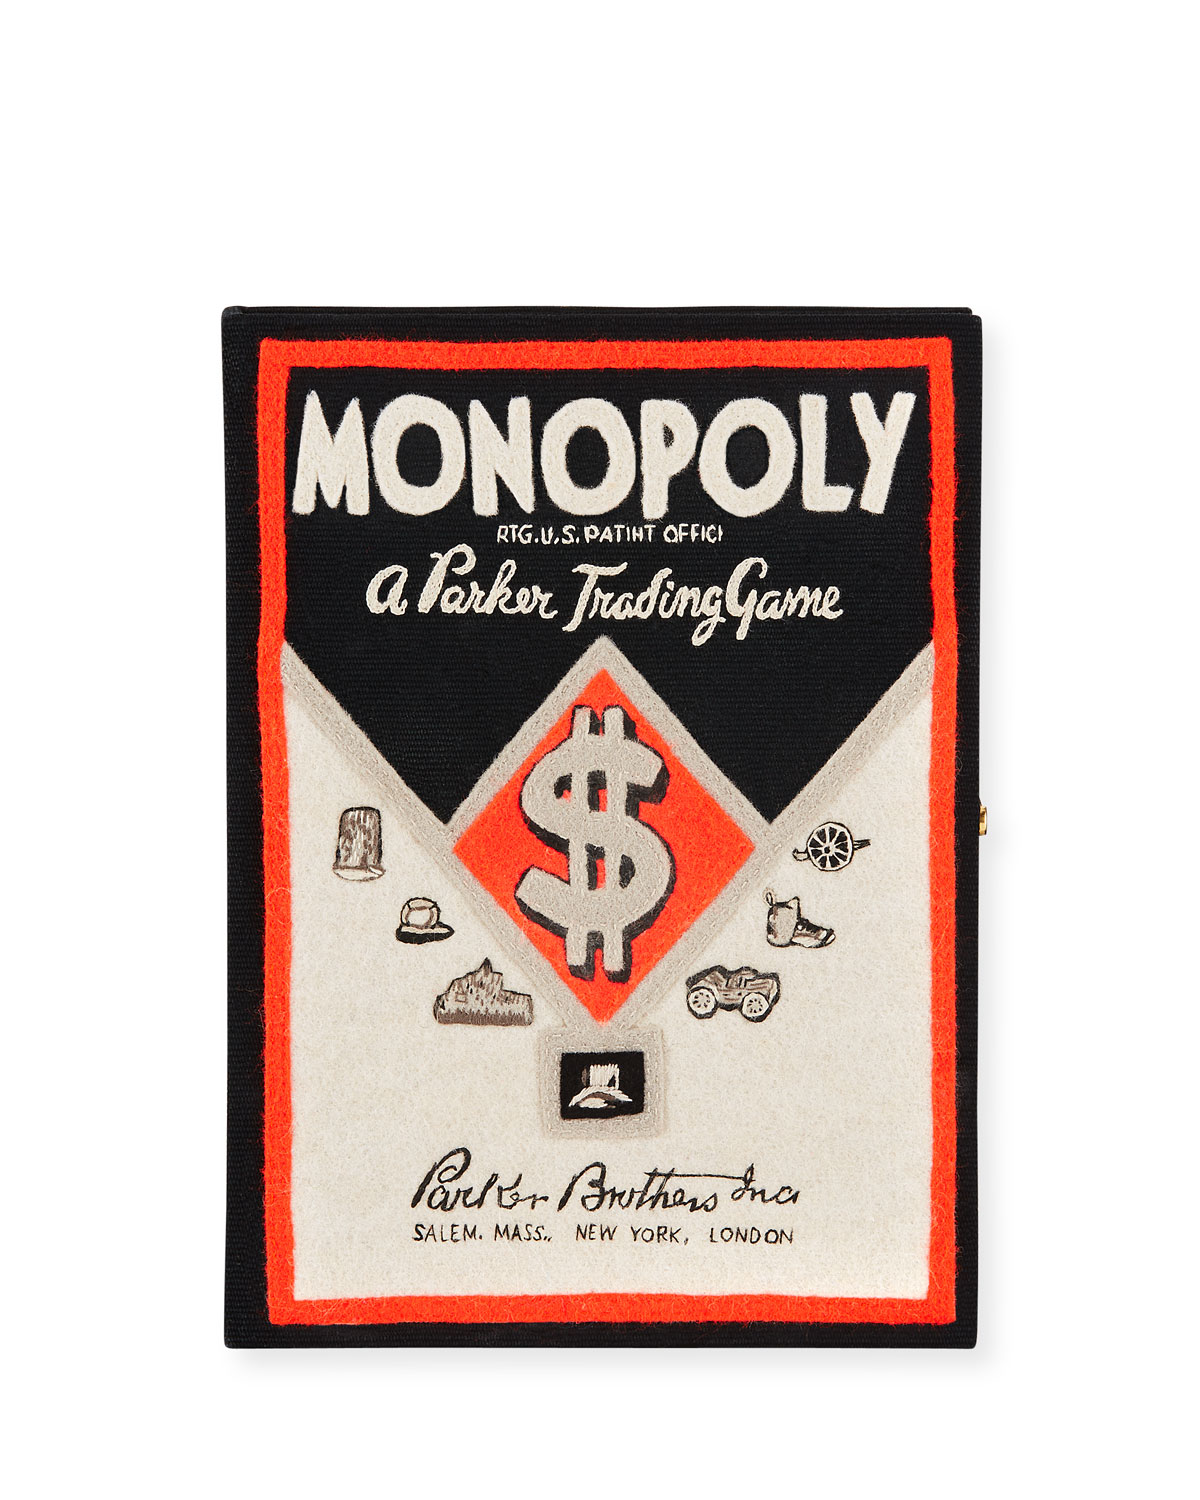 Monopoly Parker Bros Trading Game Box Clutch Bag, Black Pattern